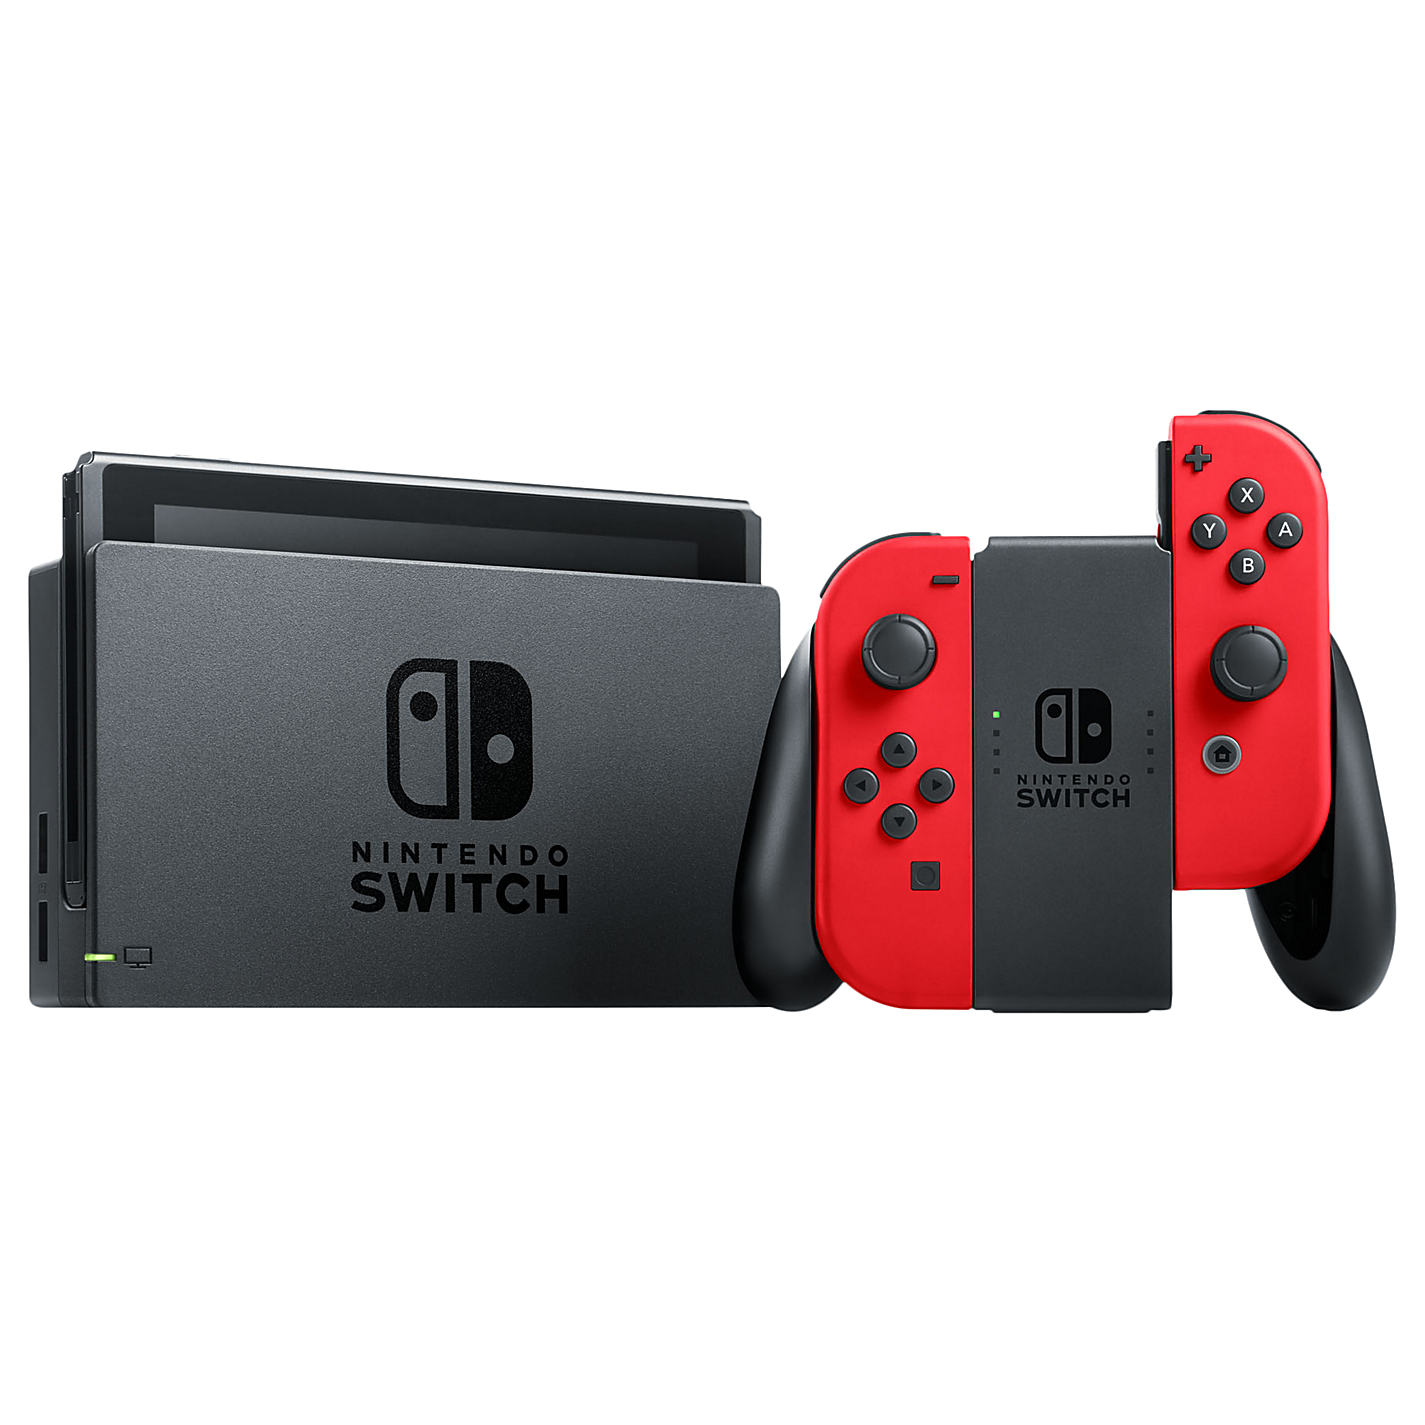 Switch Sales: Red Nintendo Switch